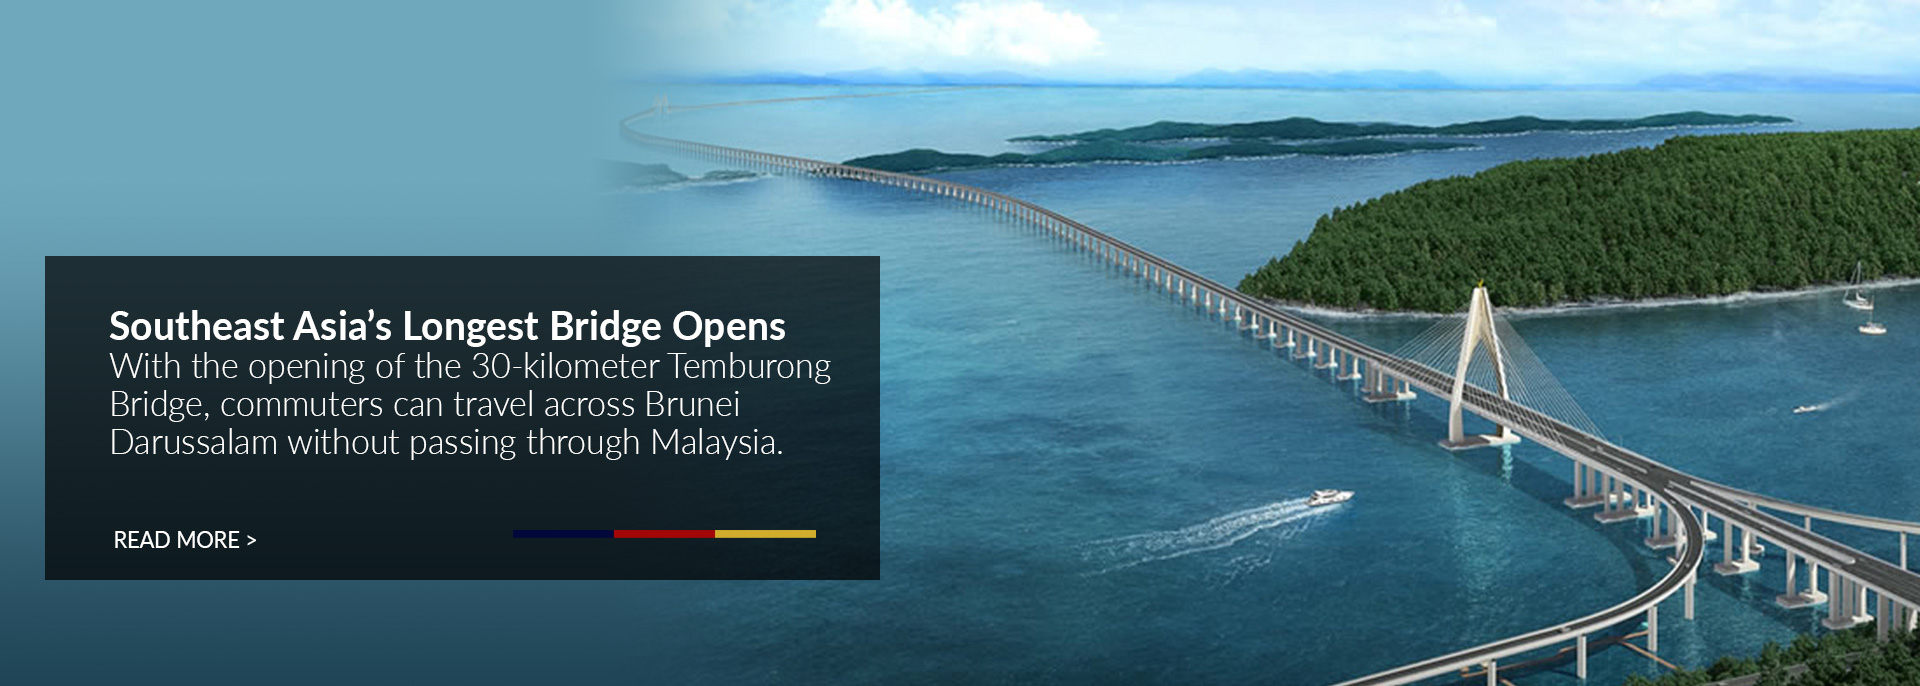 Southeast Asia's Longest Bridge Opens